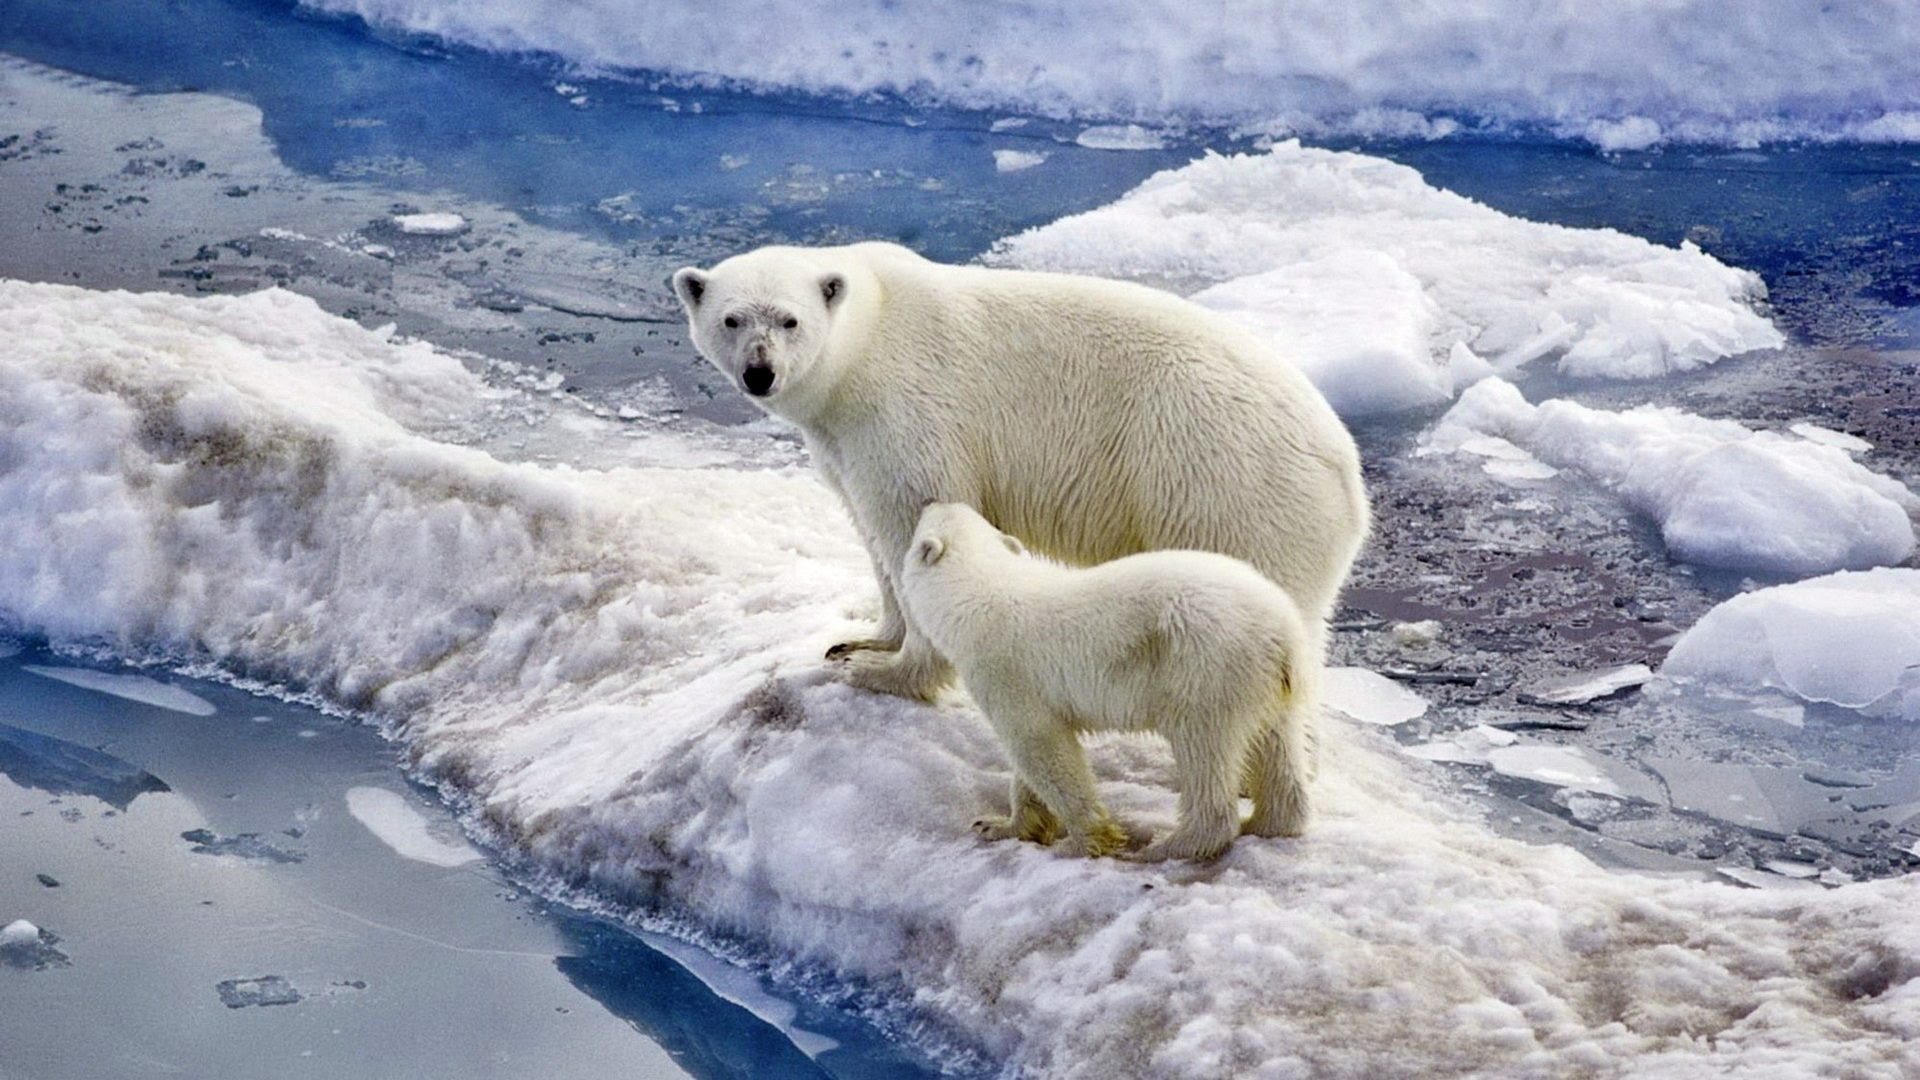 Polar Bear Family Baby Snow Ice Ocean Wallpaper Widescreen Hd : Wallpapers13.com